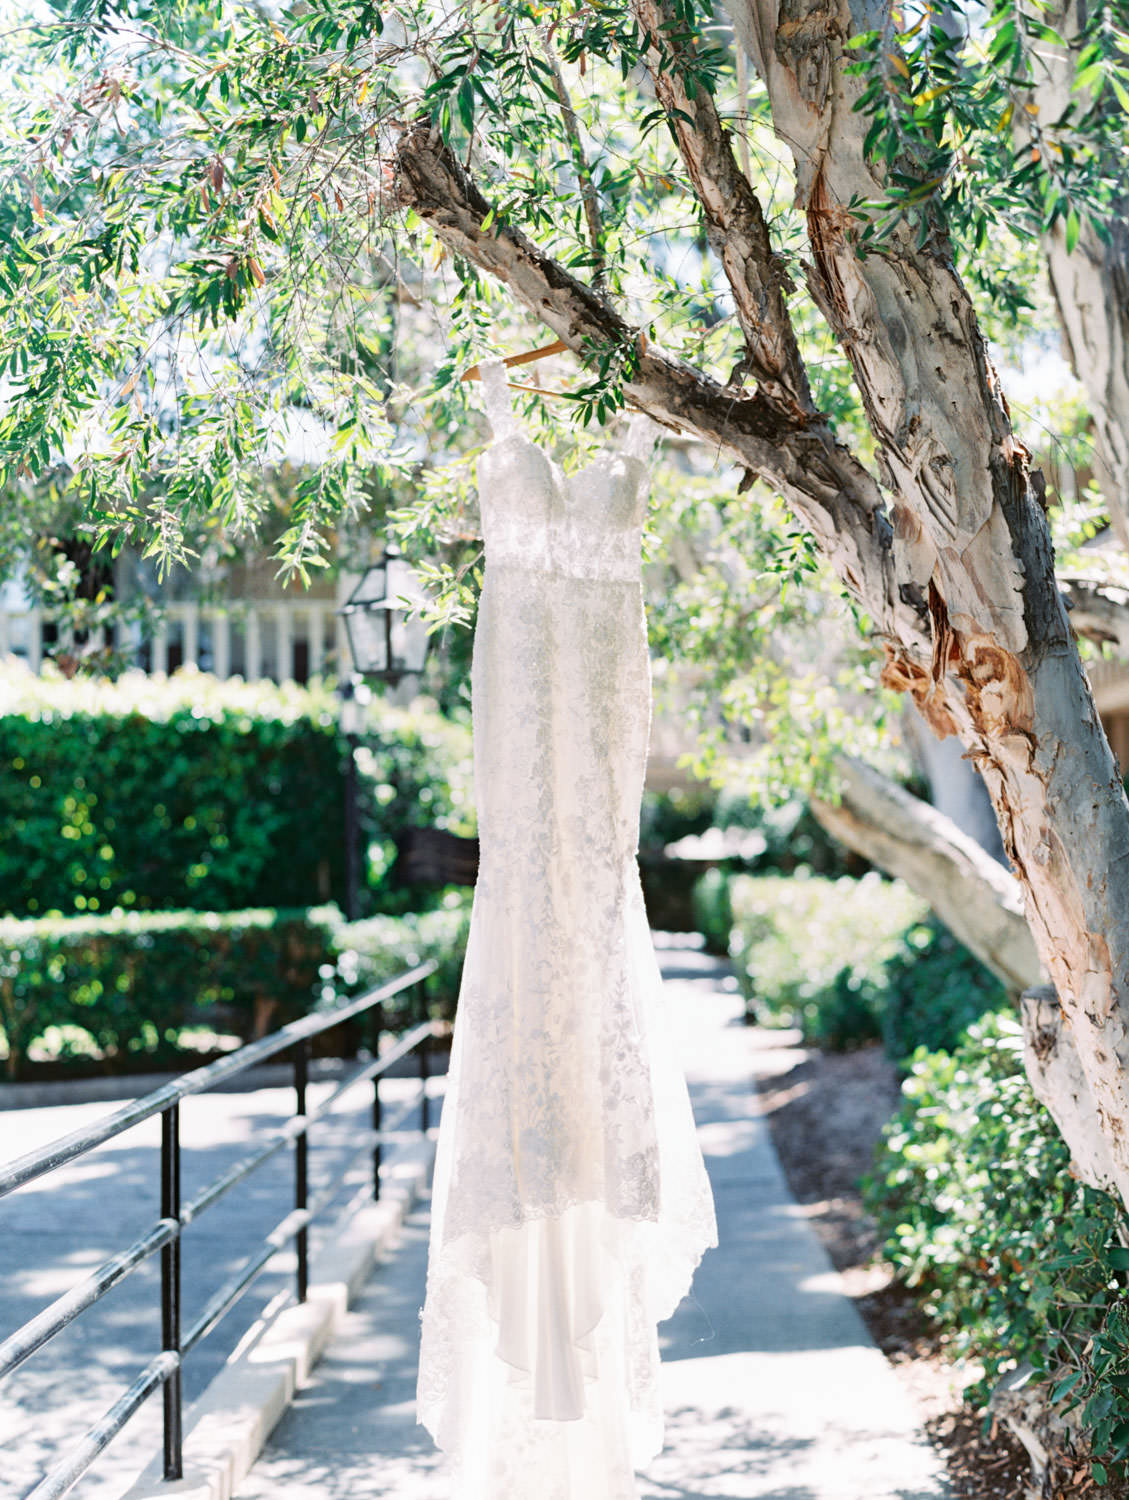 Martina Liana gown from The White Flower Bridal Boutique hanging from a tree. Wedding at Rancho Bernardo Inn. Film photo by Cavin Elizabeth Photography